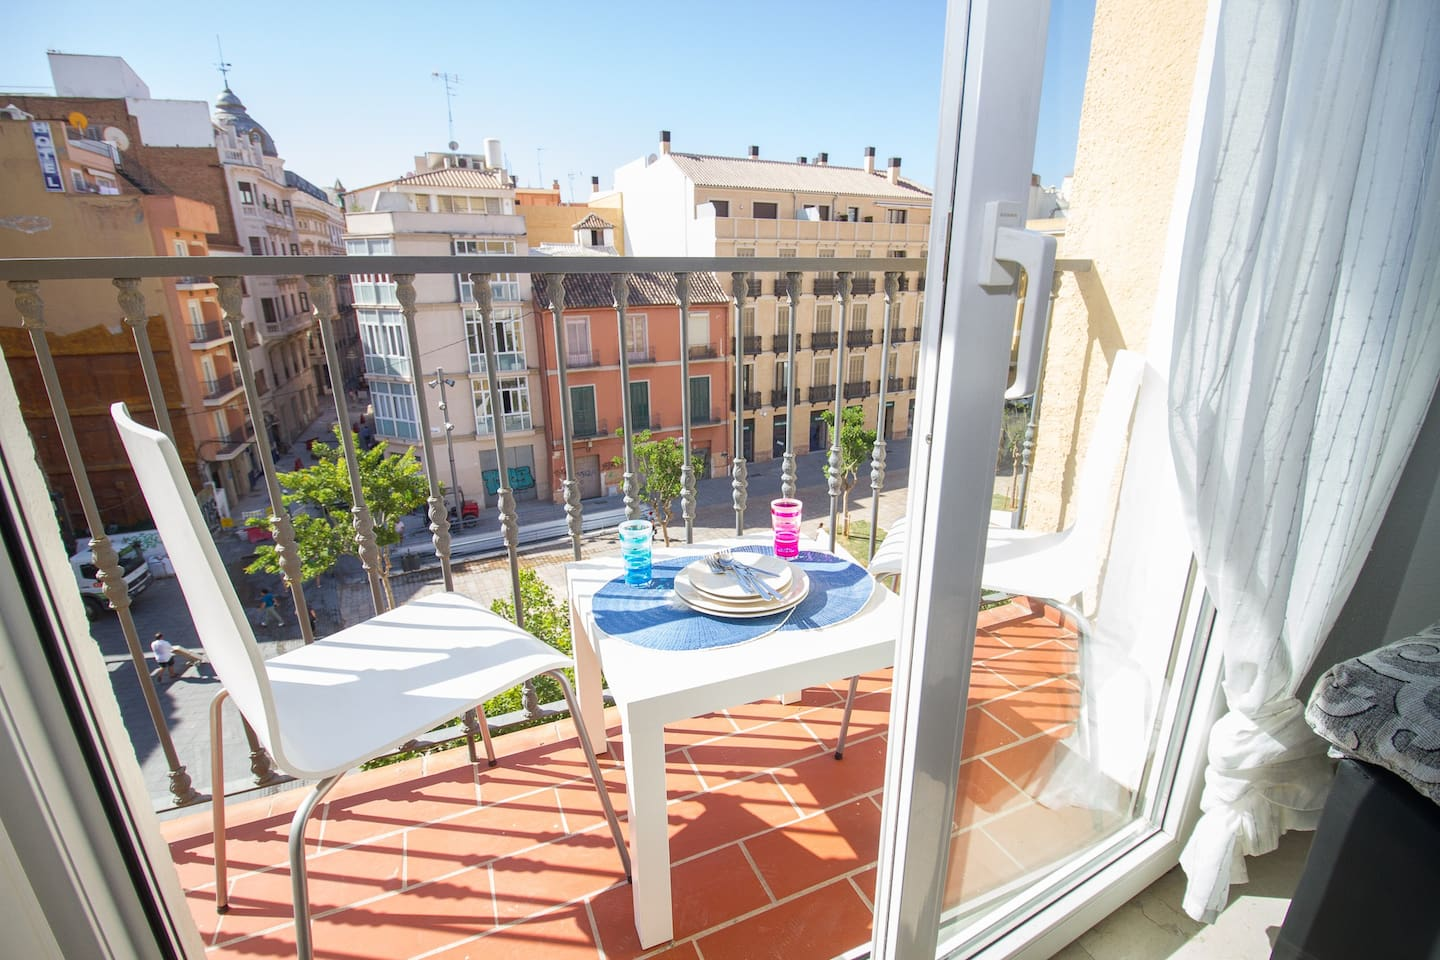 Apartamento G Minis Edificio Morgan 4 A Flats For Rent In  # Muebles Mogar Malaga